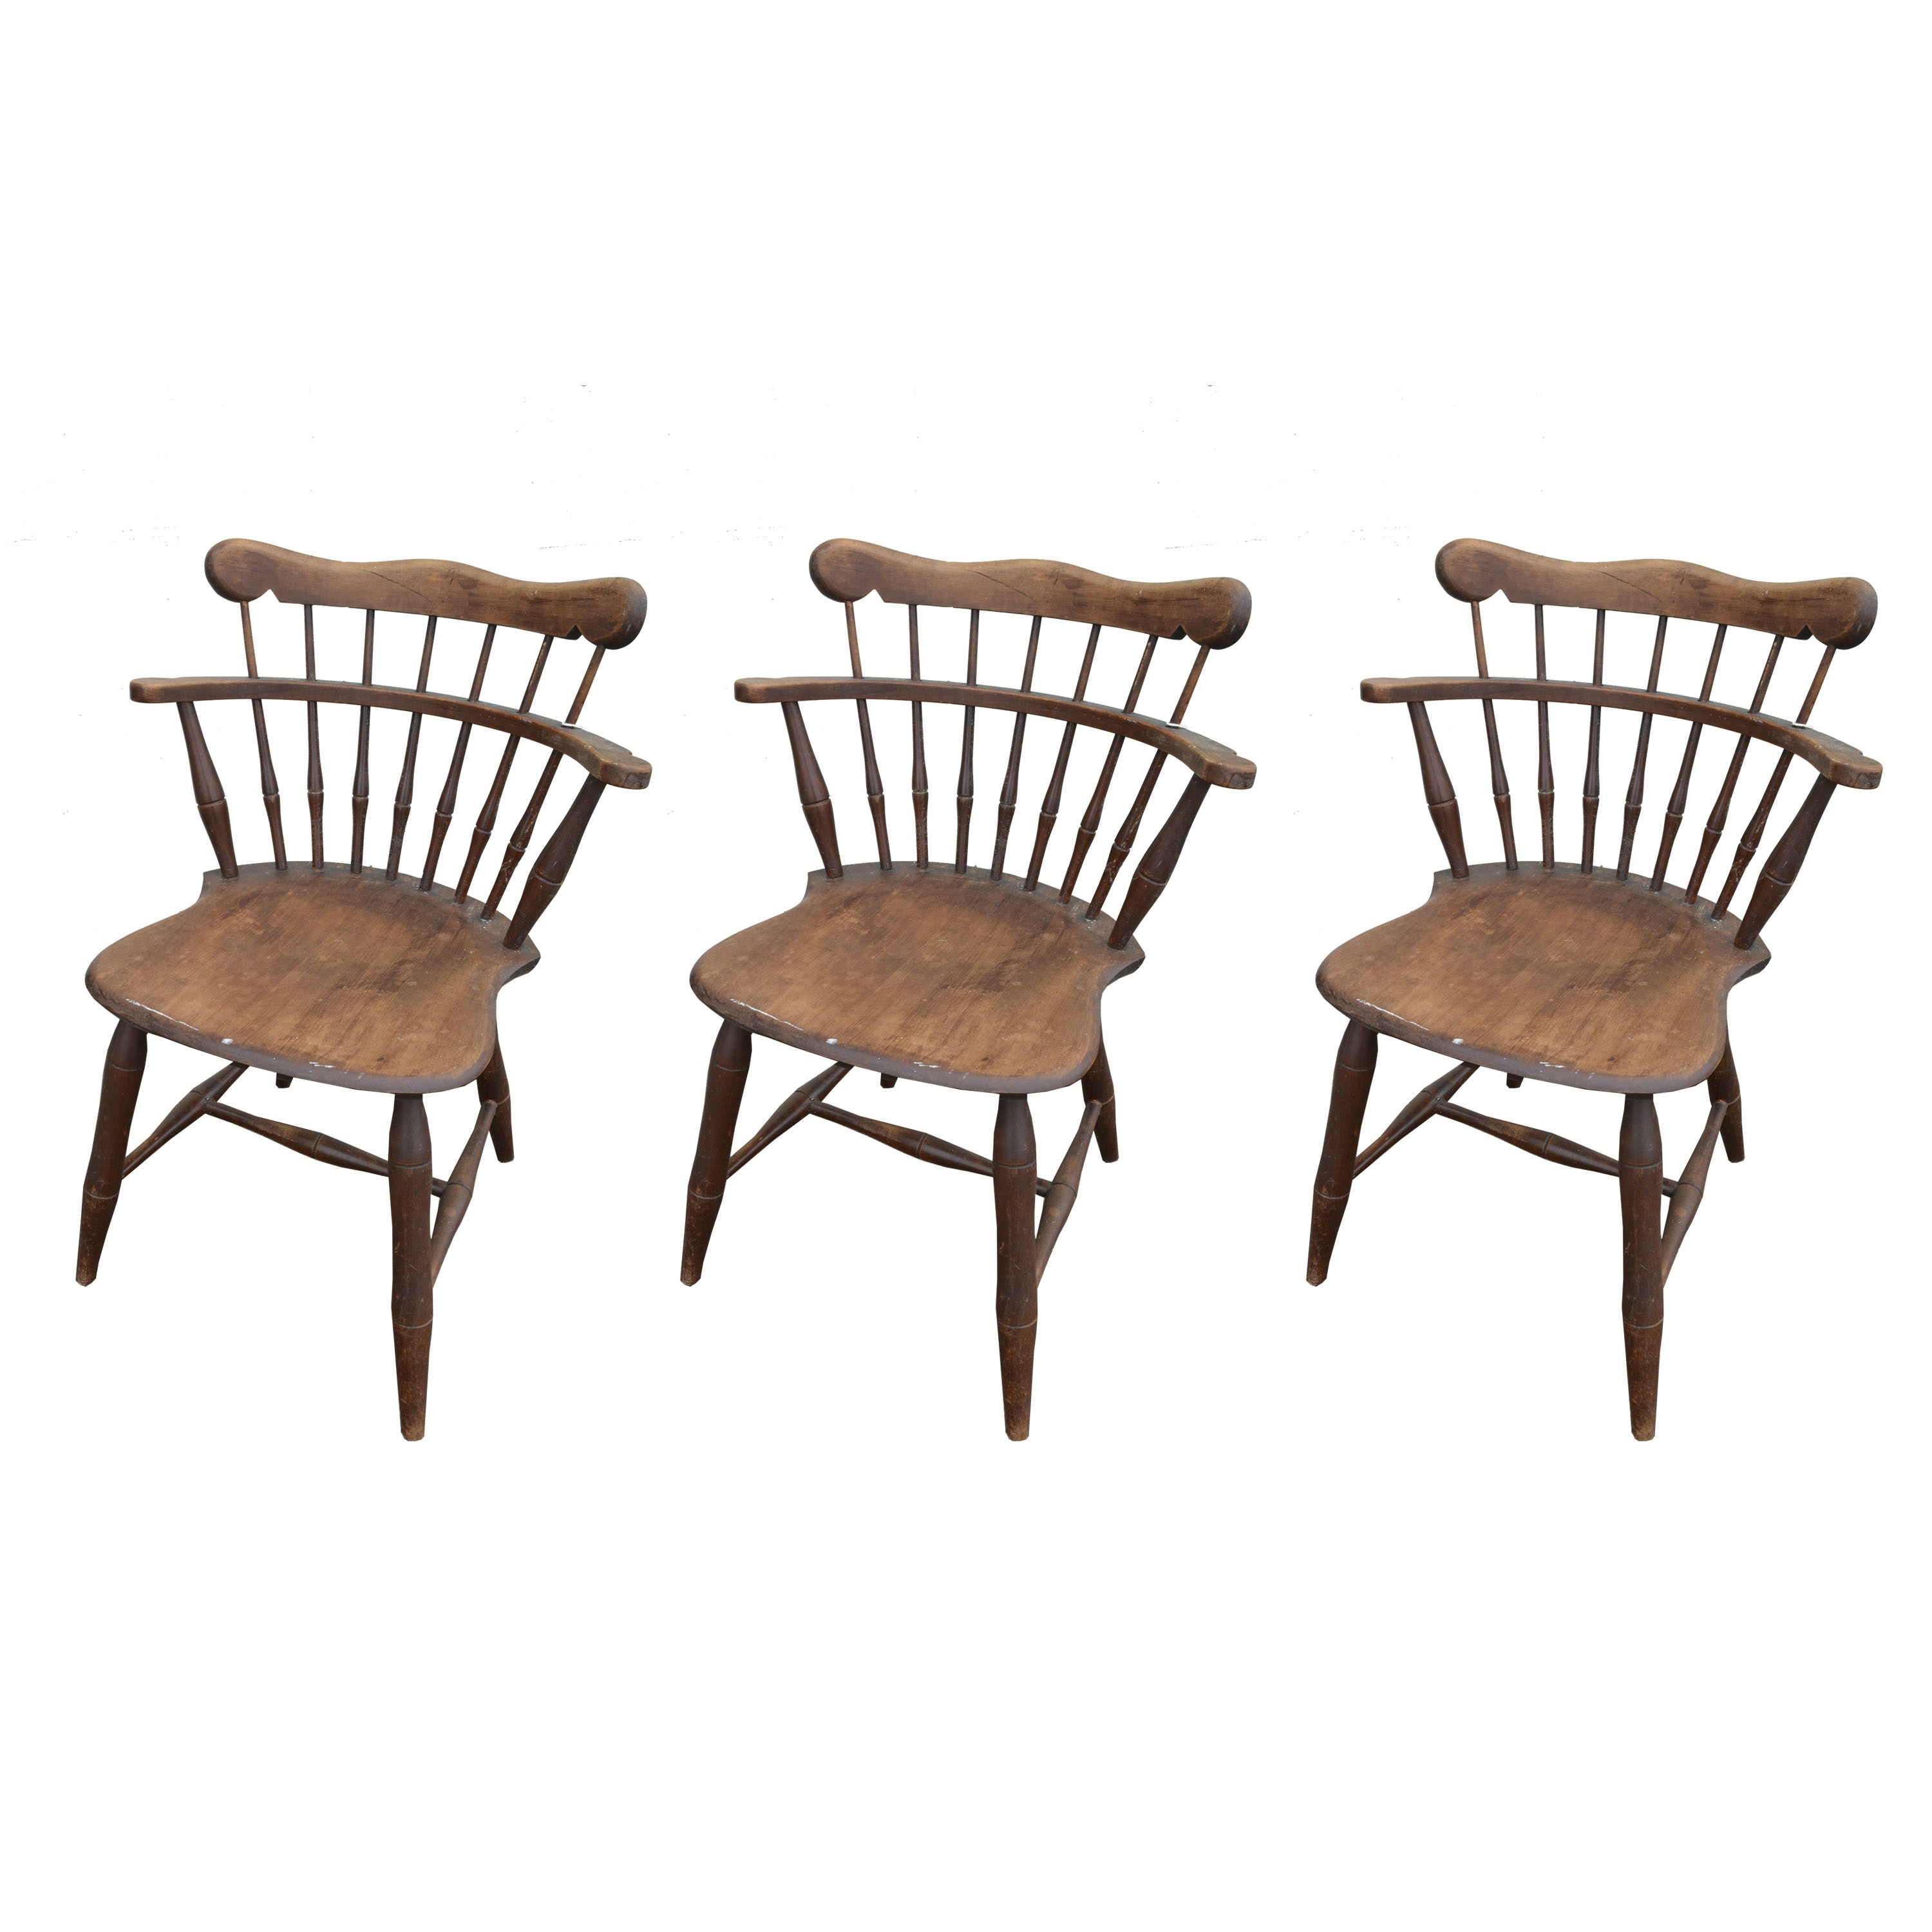 Set of vintage Windsor Style Chairs by Kling